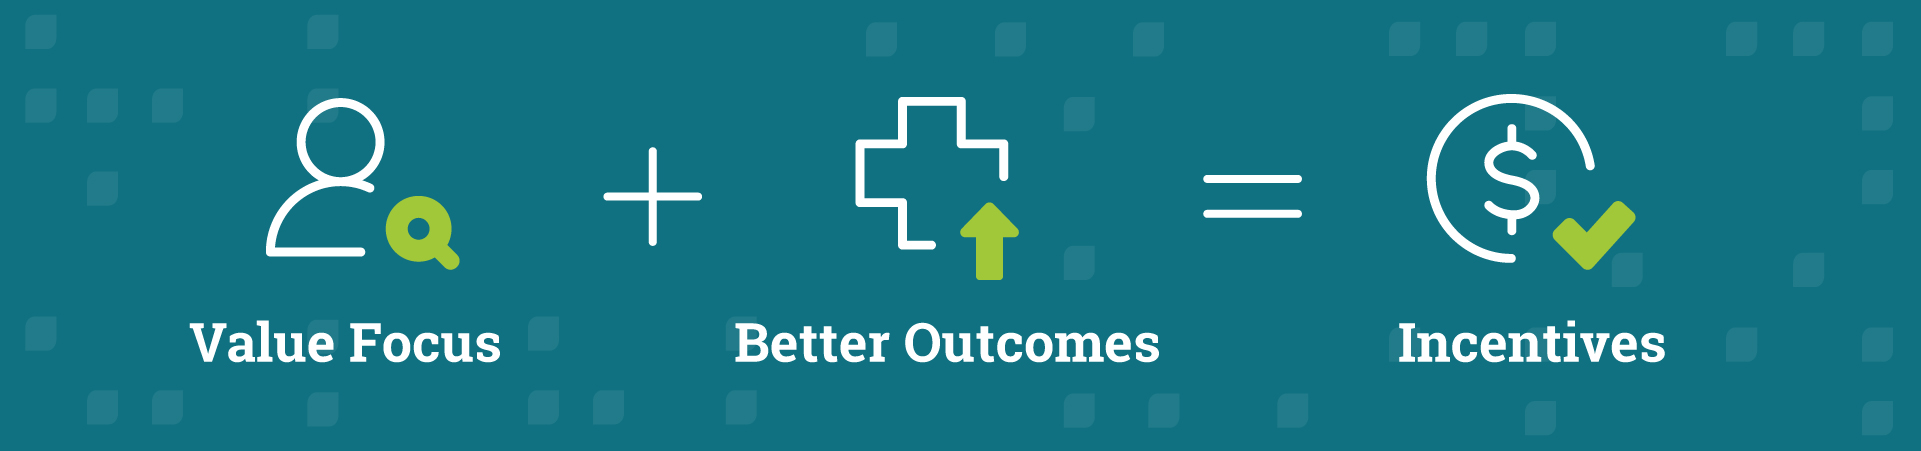 value-focus-better-outcomes-incentives_illustration